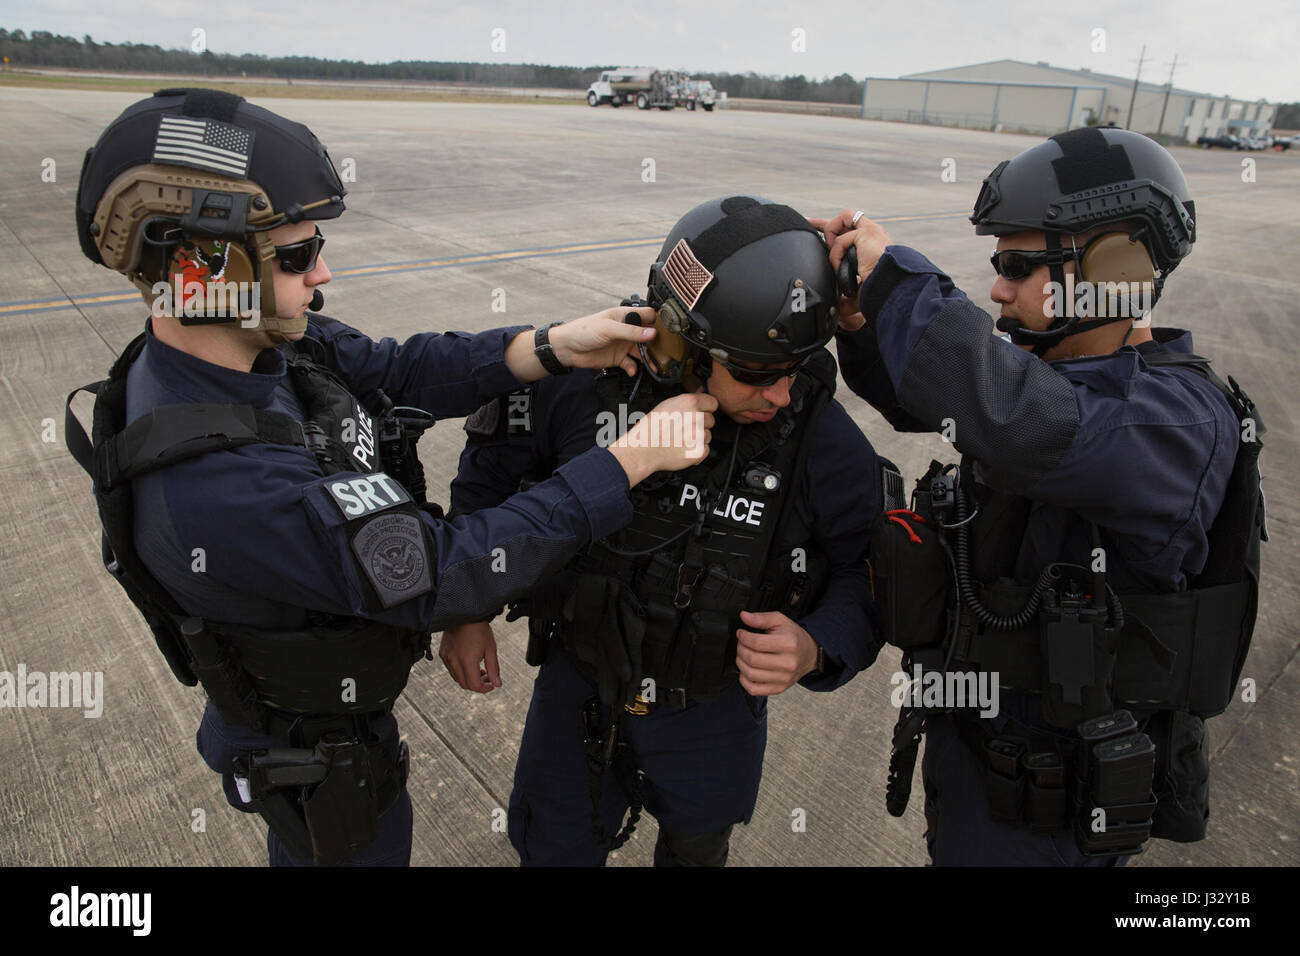 the history of customs and border protection United states customs and border protection (cbp) is the largest federal law enforcement agency of the united states department of homeland security, and is the country's primary border control organization.